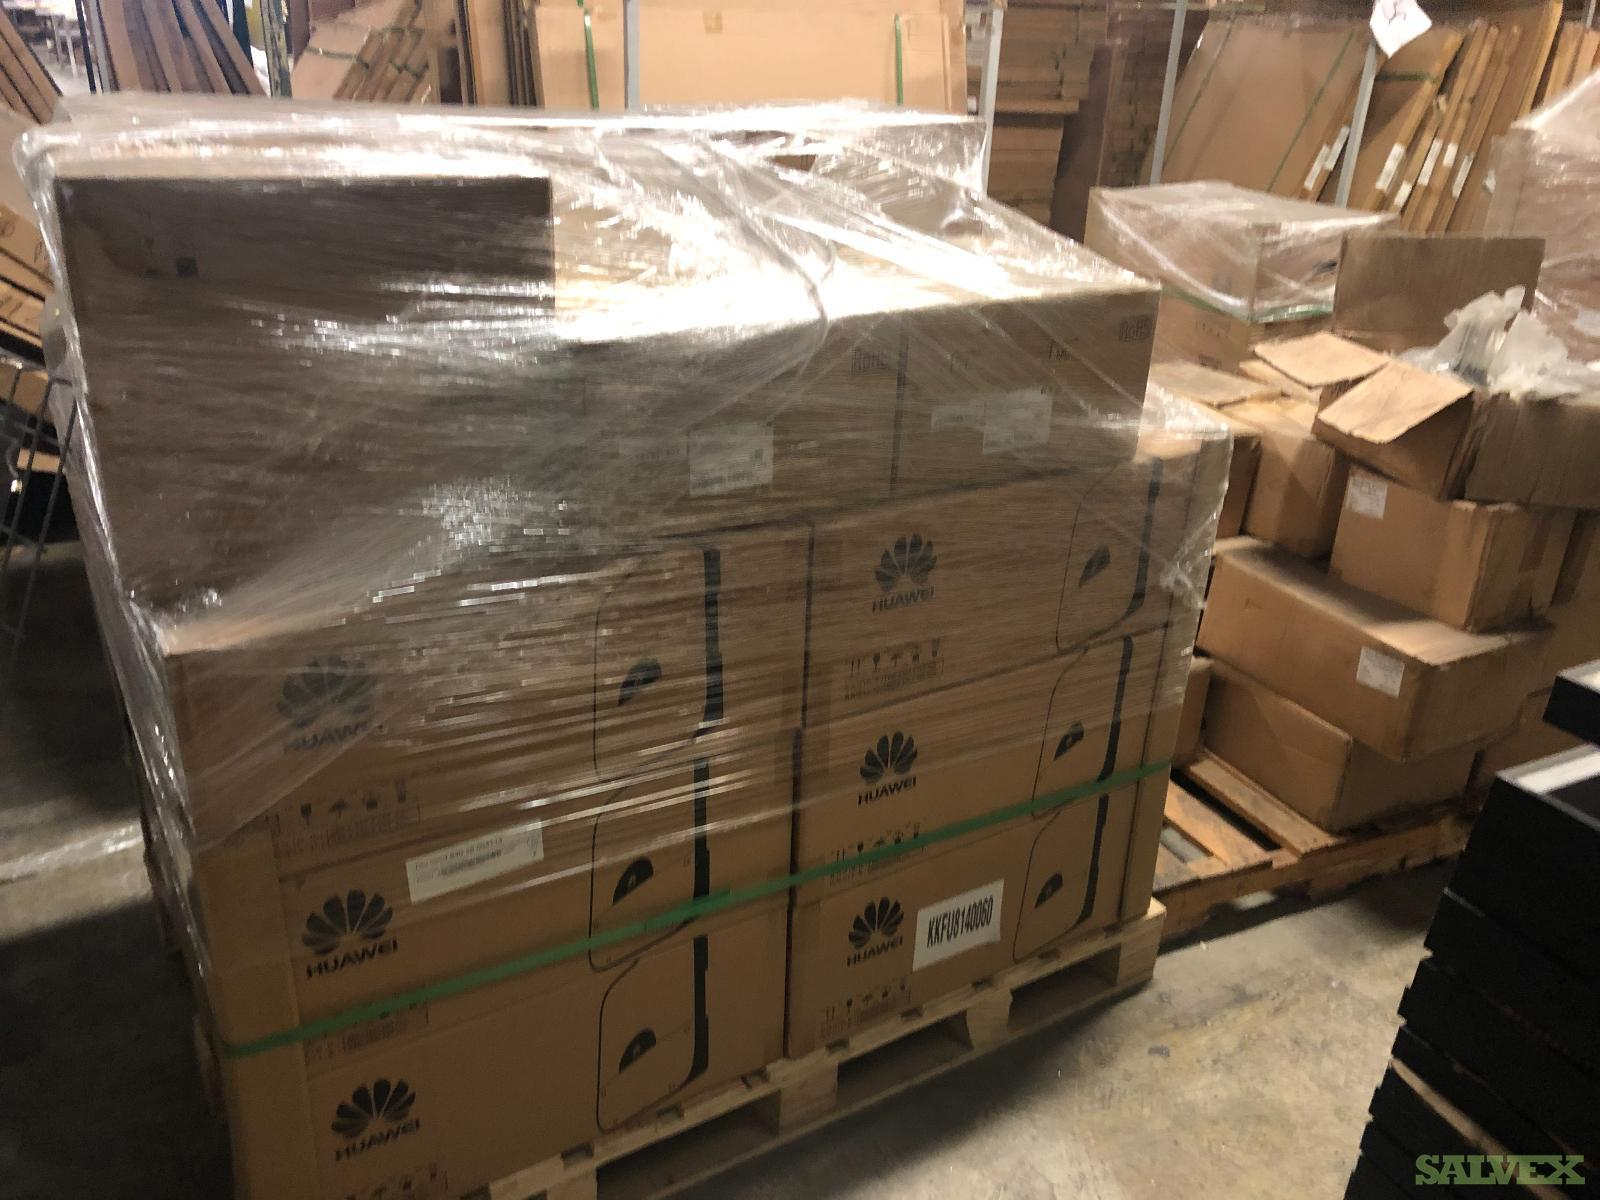 Huawei Inverters & Industrial Frequency Transformers (60 Units)